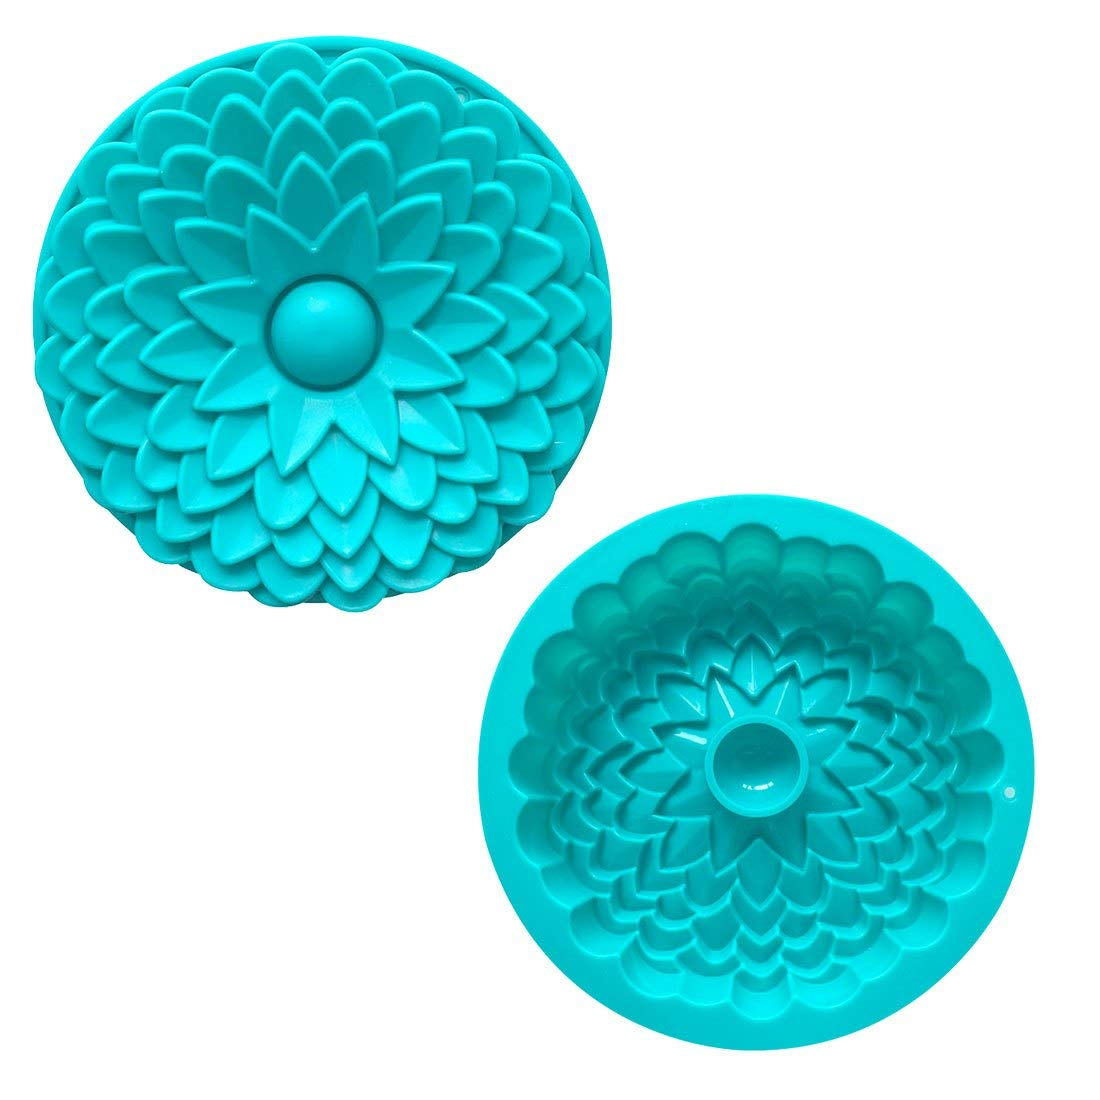 Bake Stencil - 1pc Silicone Chocolate Soap Mold Cake Stencil Flower Shape Mould Pastry Diy Baking Pan - Pack Square Non-stick Roll Sides Dish Shape Disposable Small Springform Heavy Basi